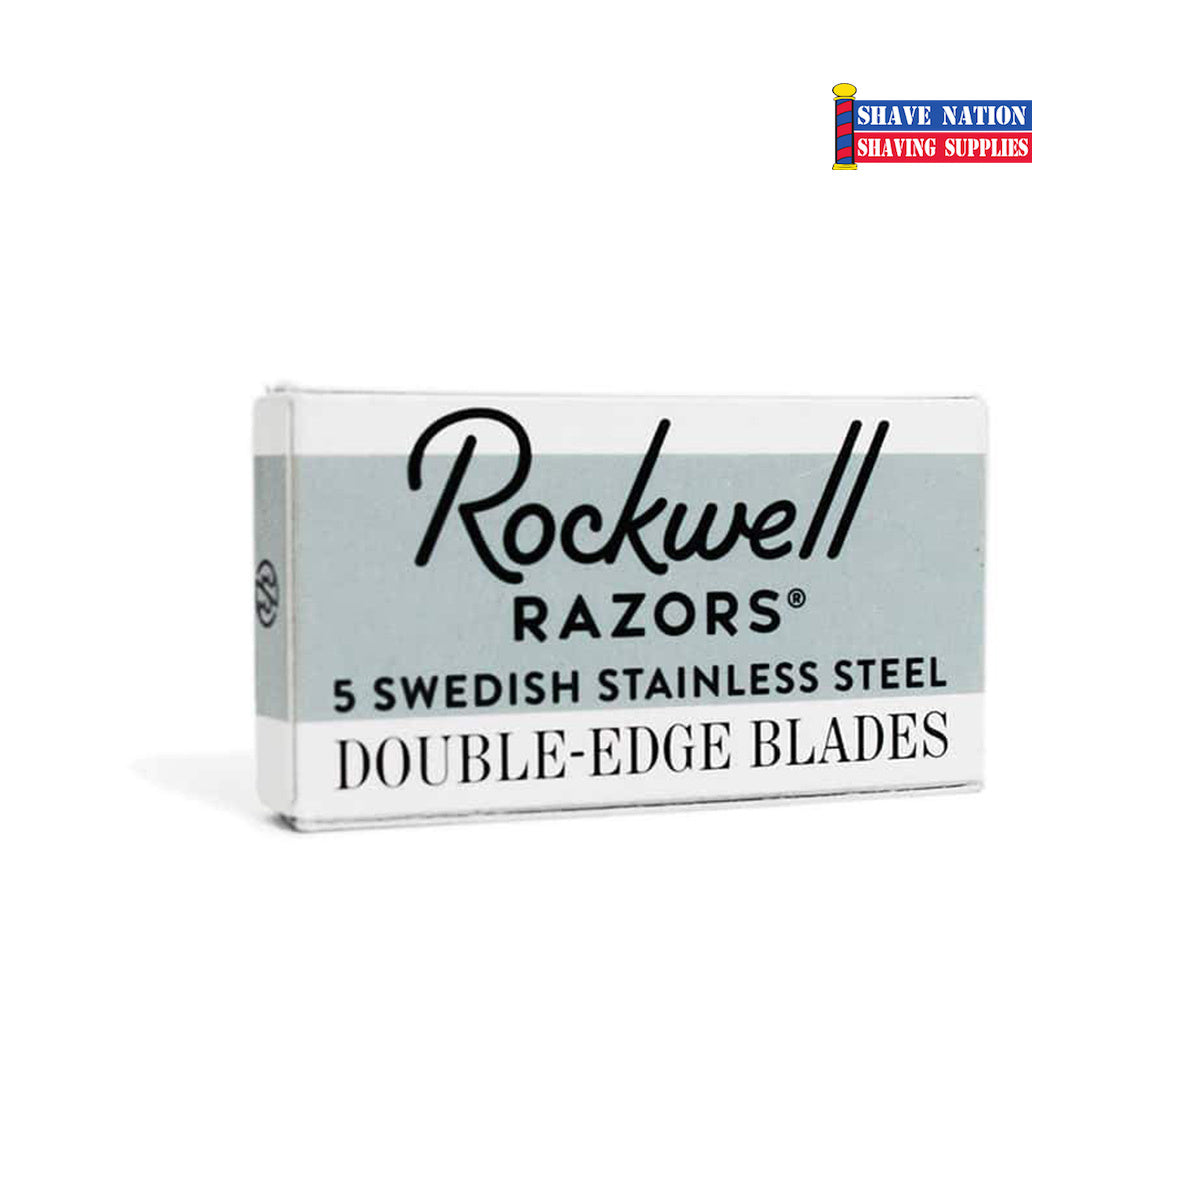 Rockwell Swedish Stainless Steel DE Blades 5pk